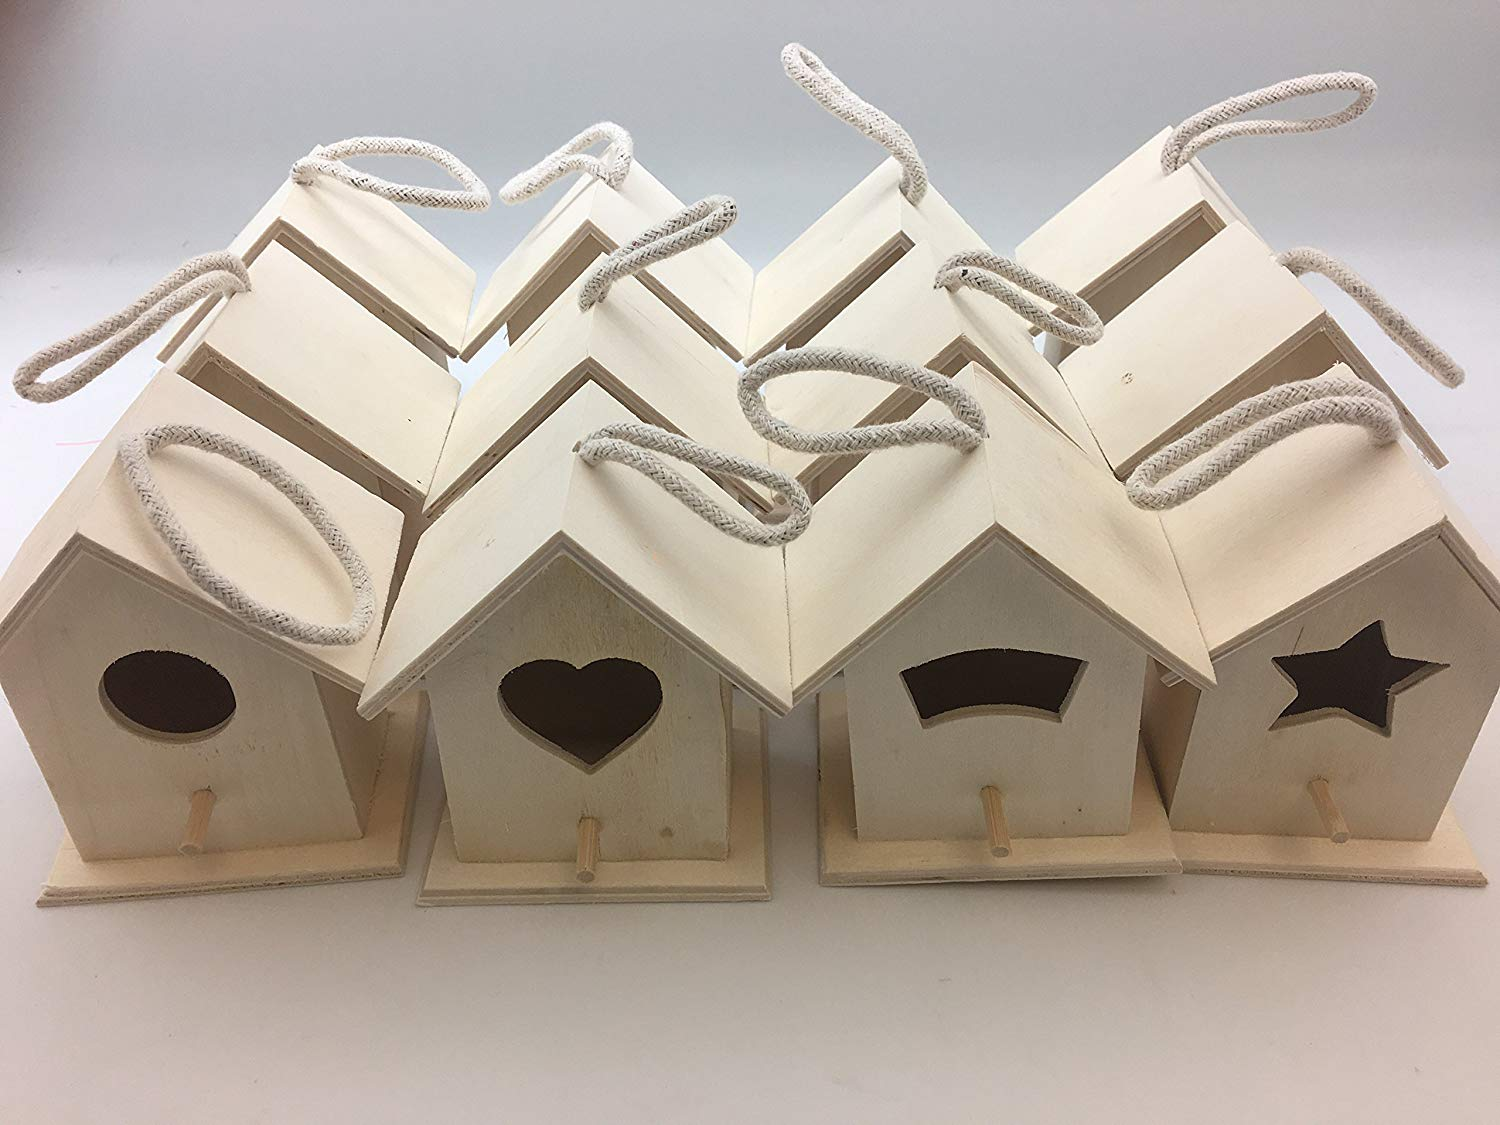 Oojami Design Your Own Wooden Birdhouses 12 Bird House Bulk